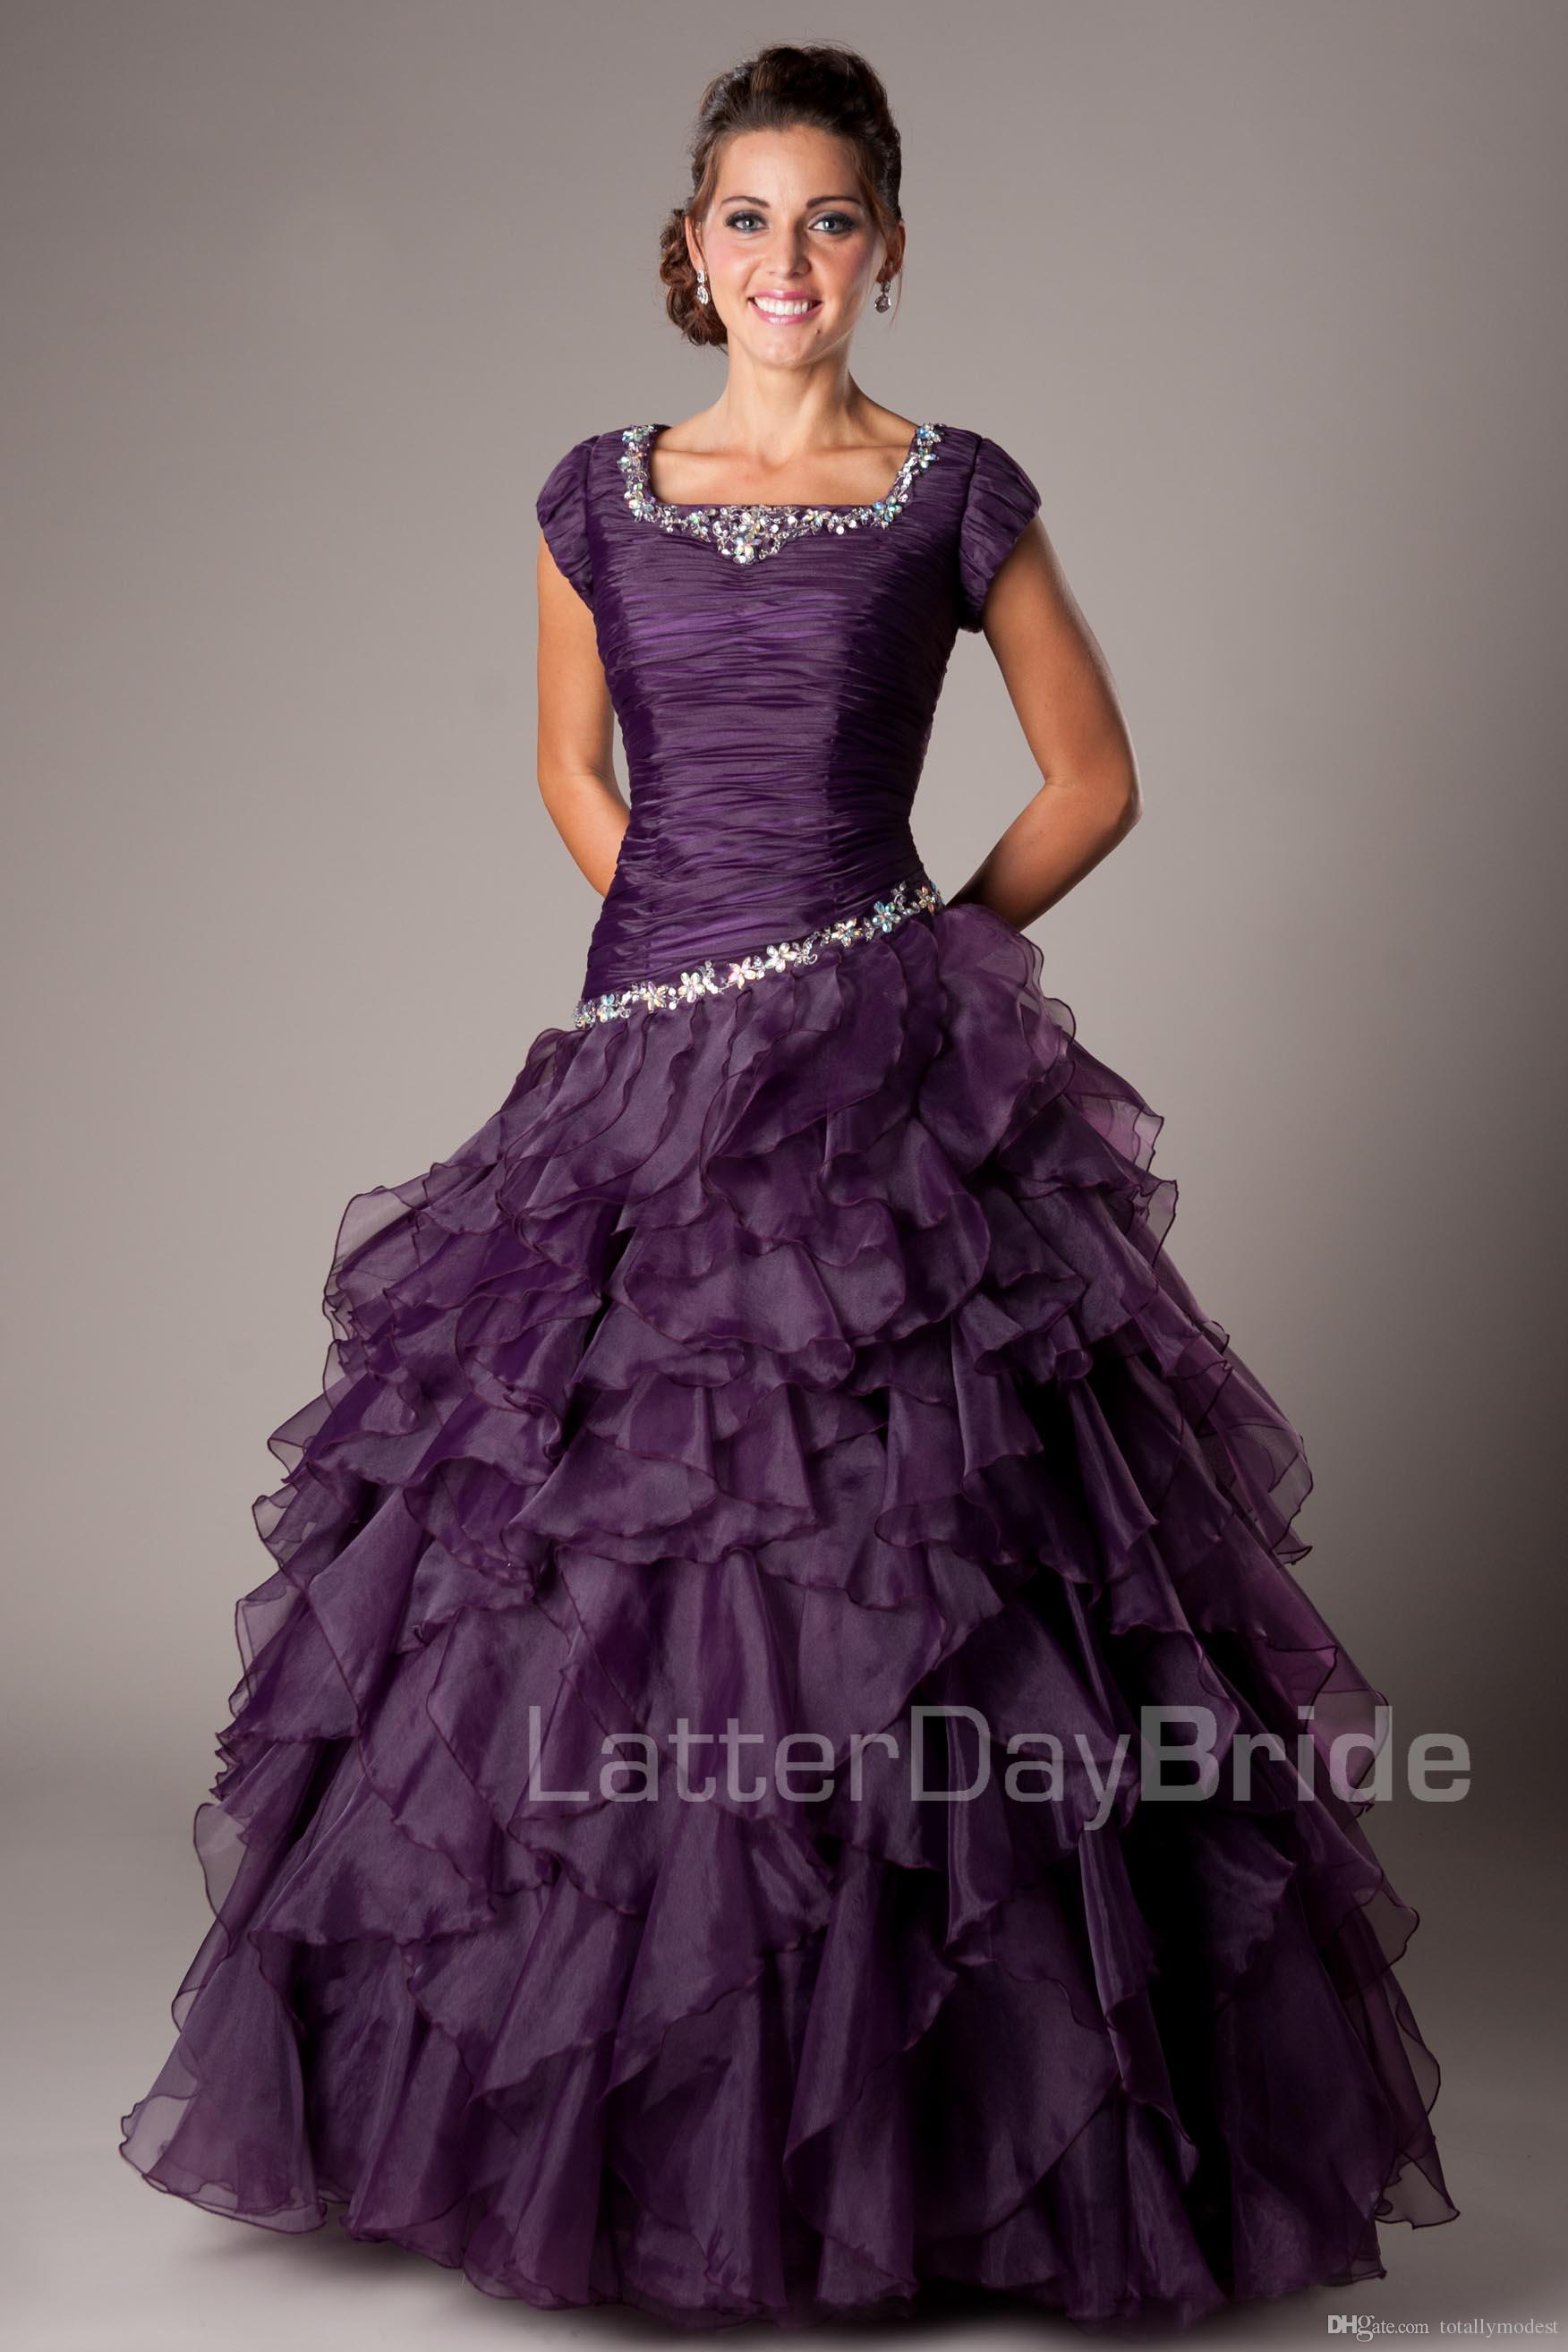 Grape Purple Ball Gown Long Modest Prom Dresses With Cap Sleeves Beaded Ruffles High School Girls Formal Prom Party Dresses New